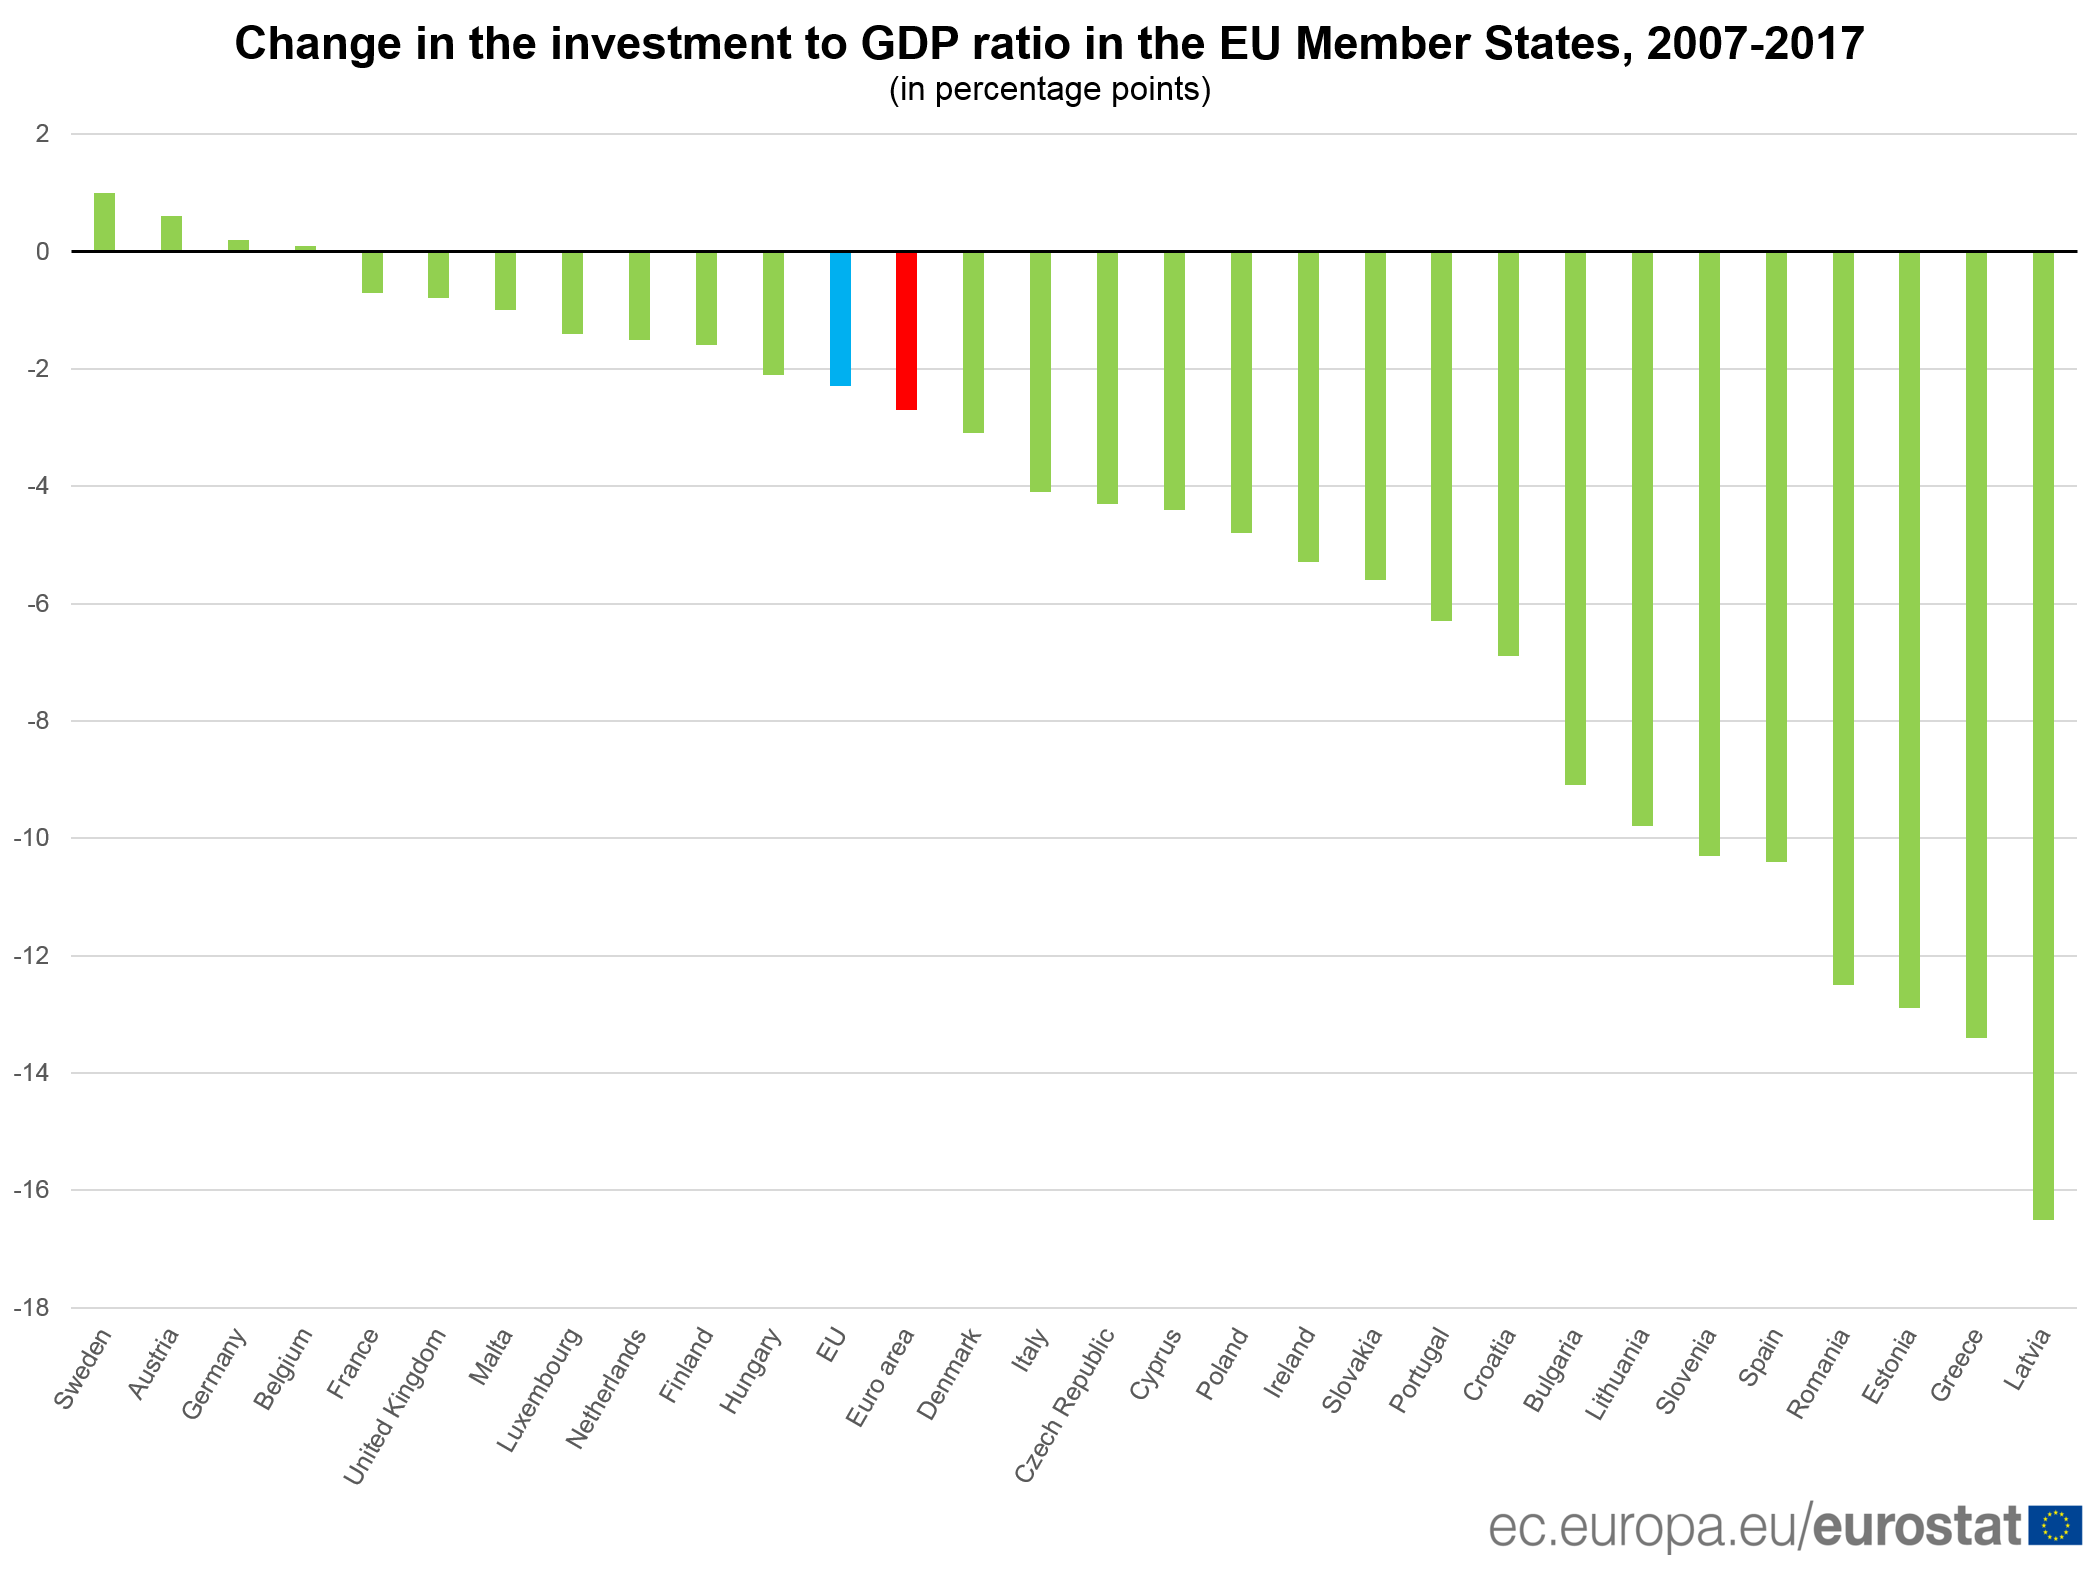 Change in the investment to GDP ratio in the EU Member States